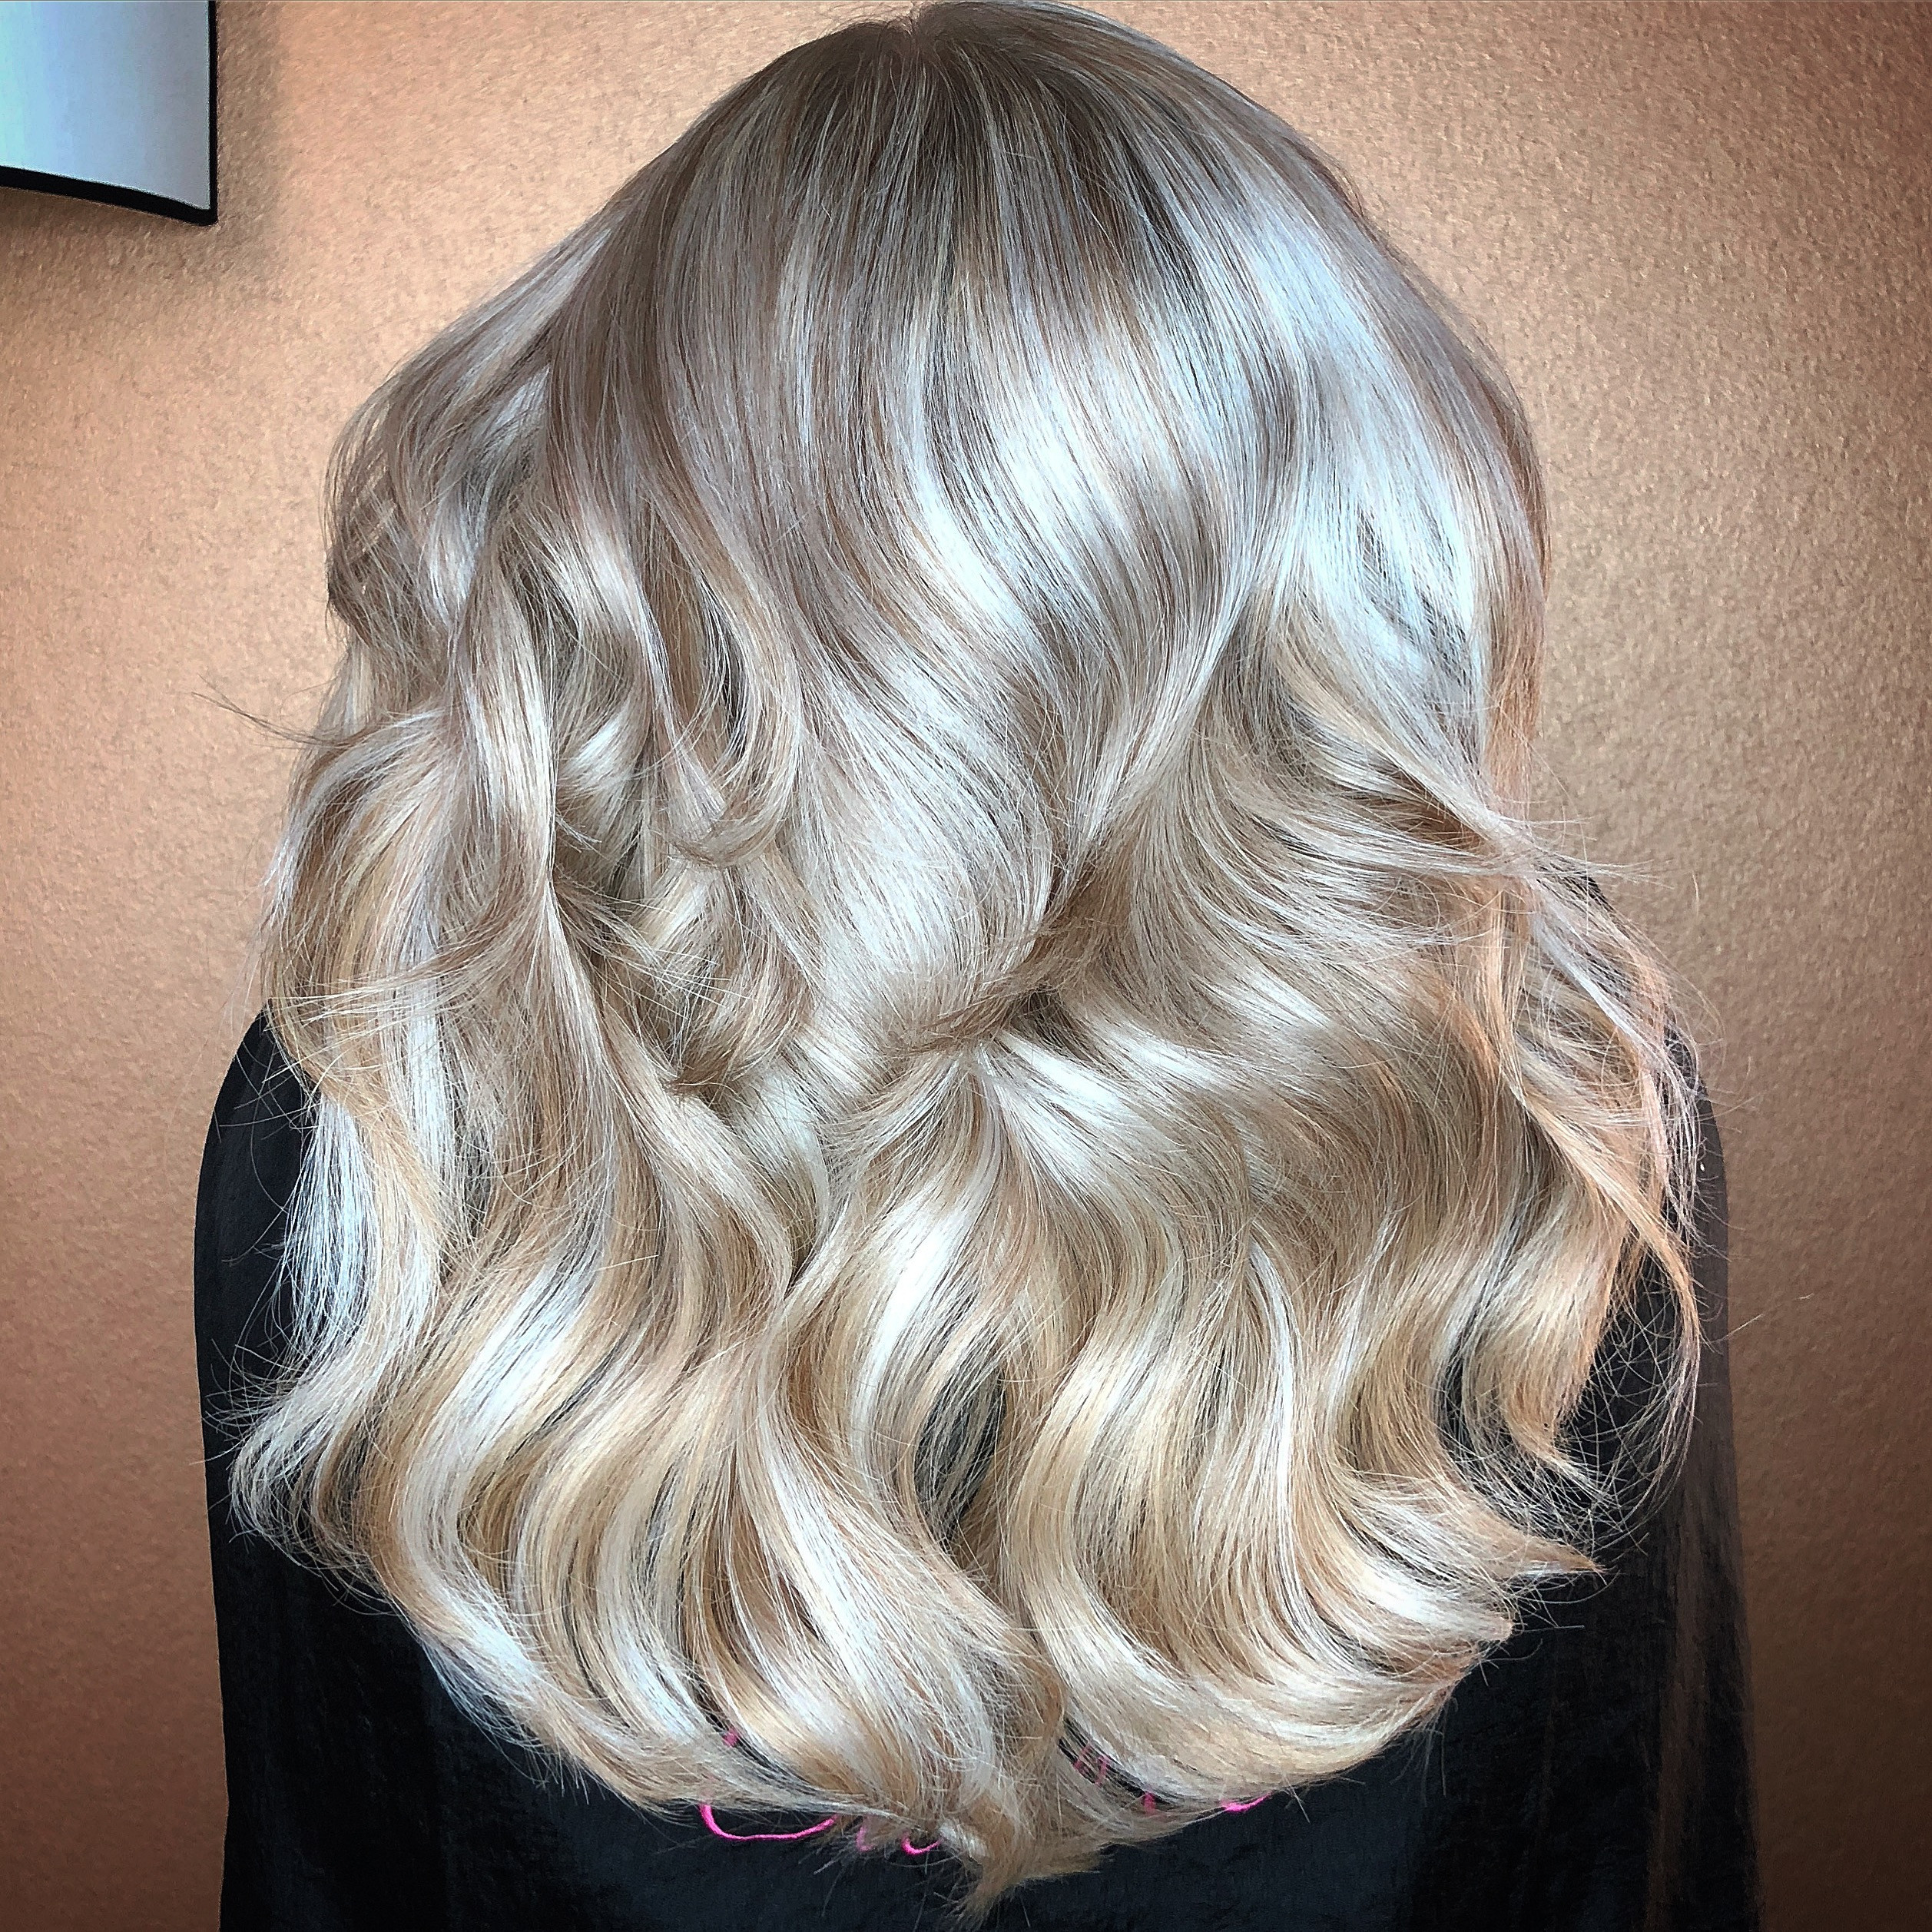 Hair Newcastle Upon Tyne Mas Hair Extensions